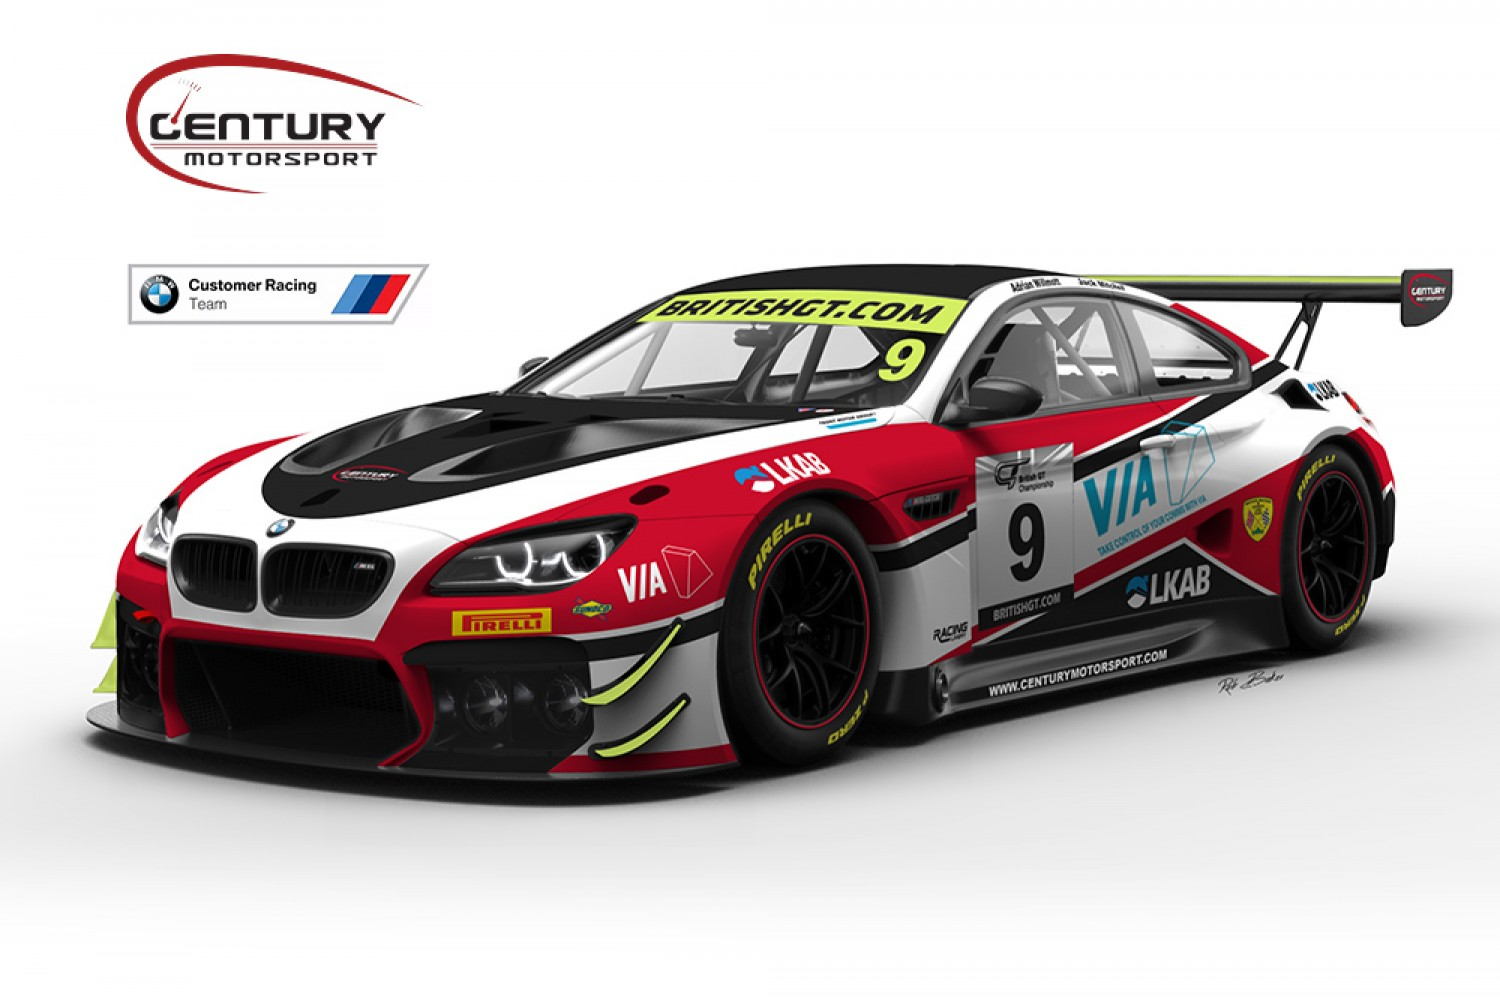 Reigning GT4 champions Century confirm GT3 expansion with Willmott, Mitchell and BMW